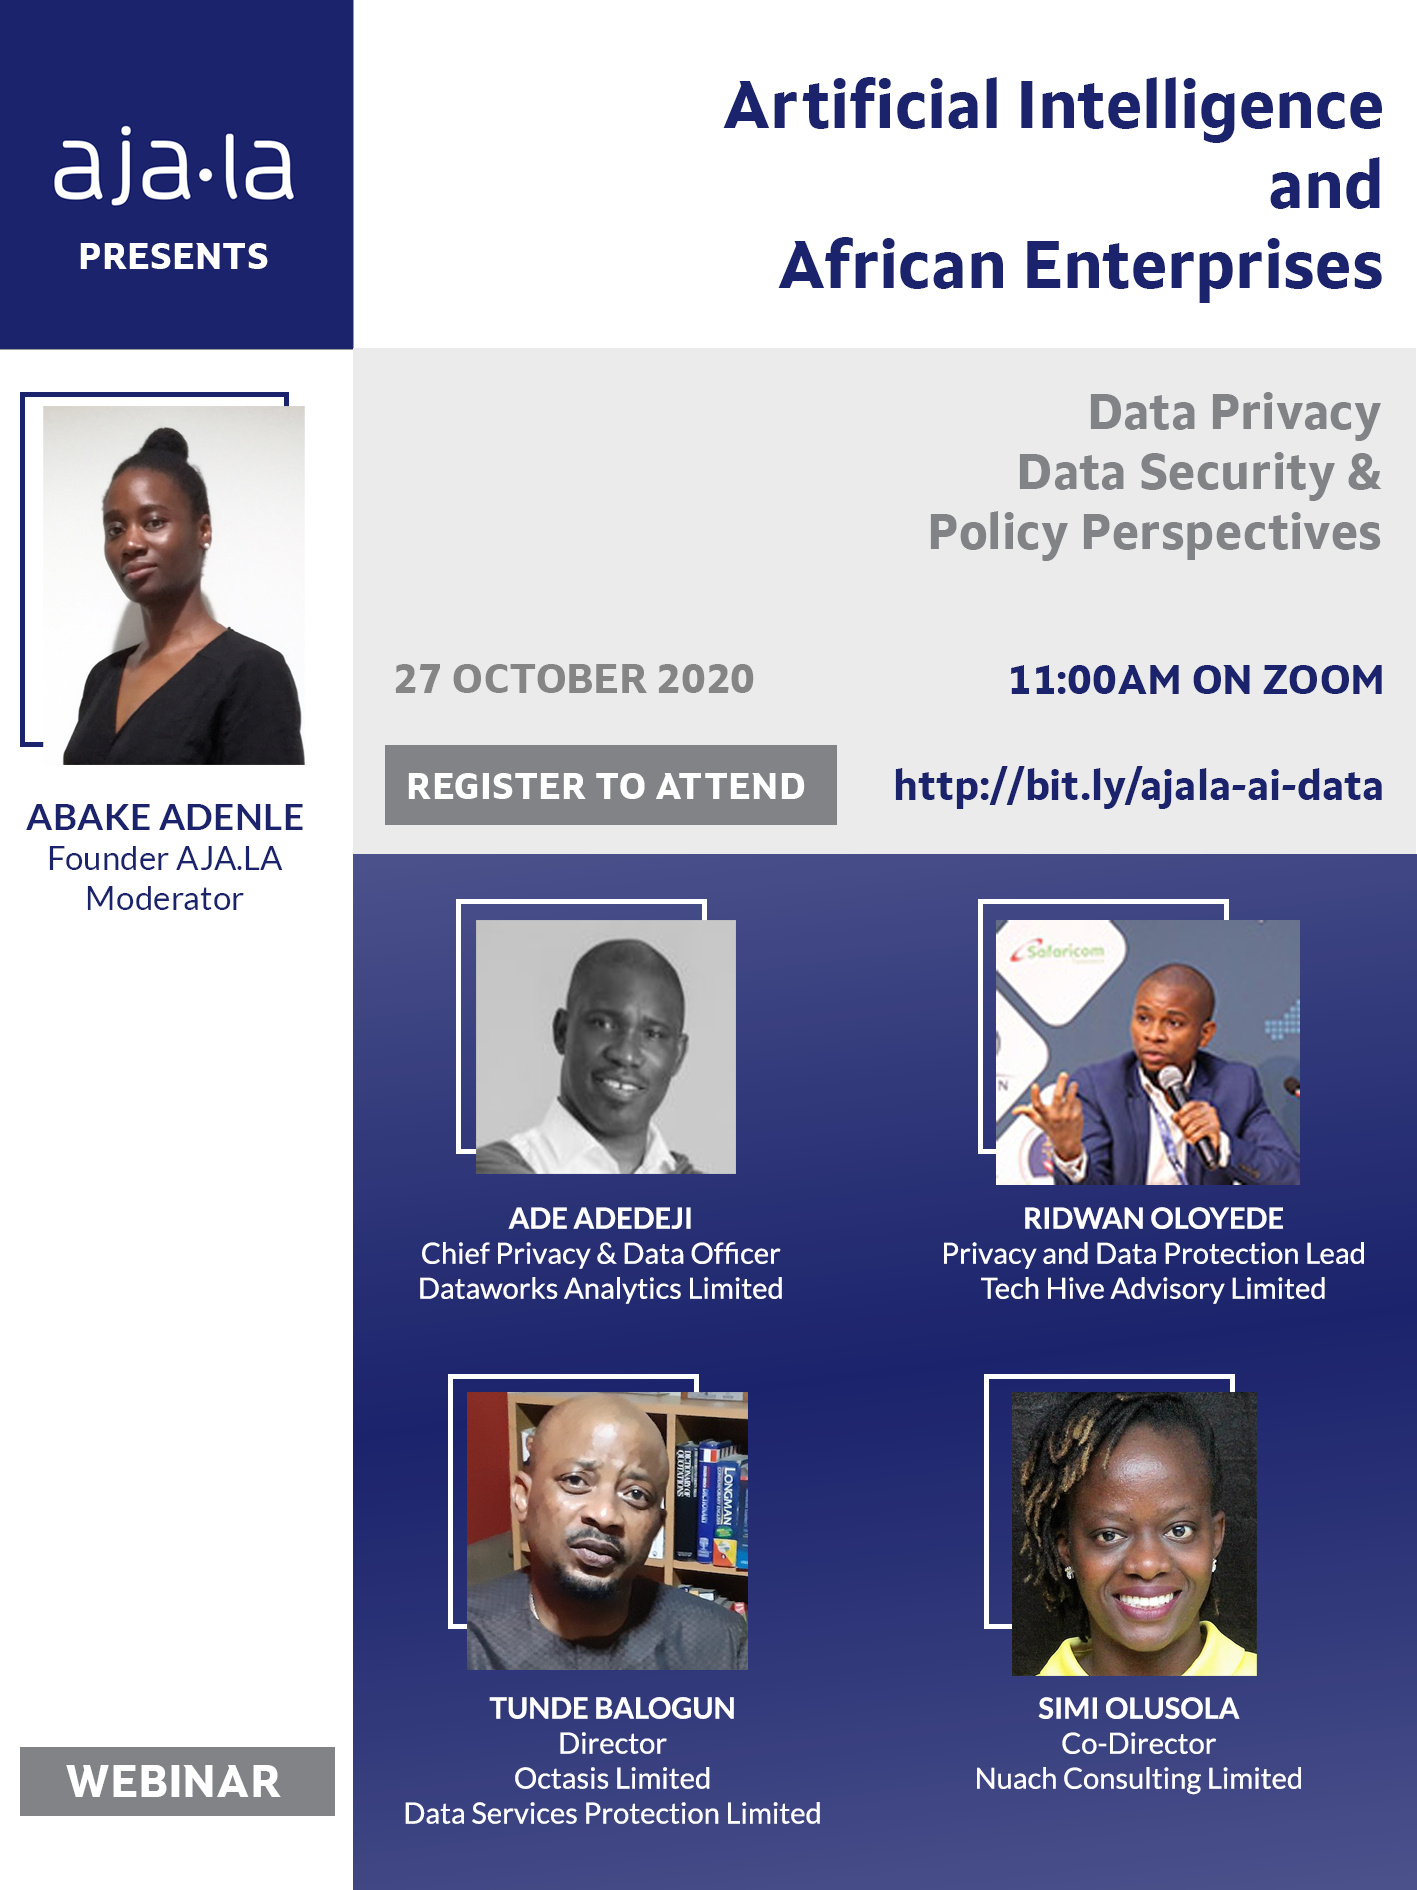 Ajala will host 4 panelists in discussion on the role of data privacy and data security in deploying AI solutions in Africa